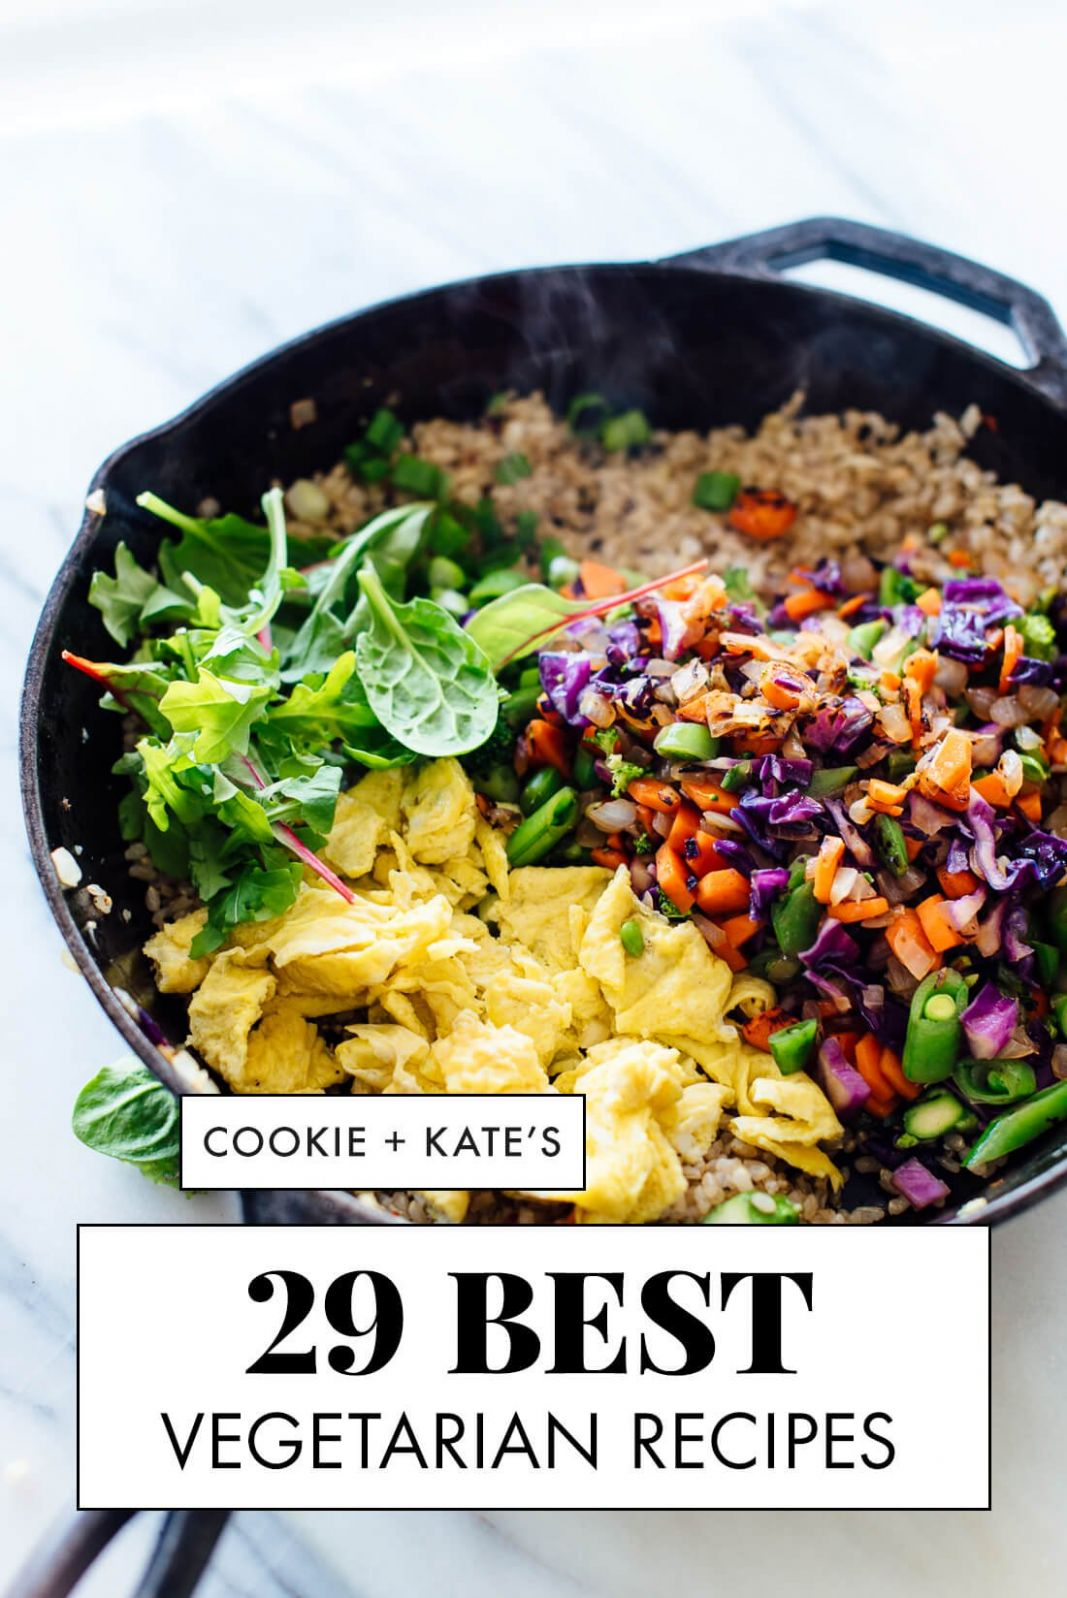 11 Best Vegetarian Recipes - Cookie and Kate - Food Recipes Vegetables